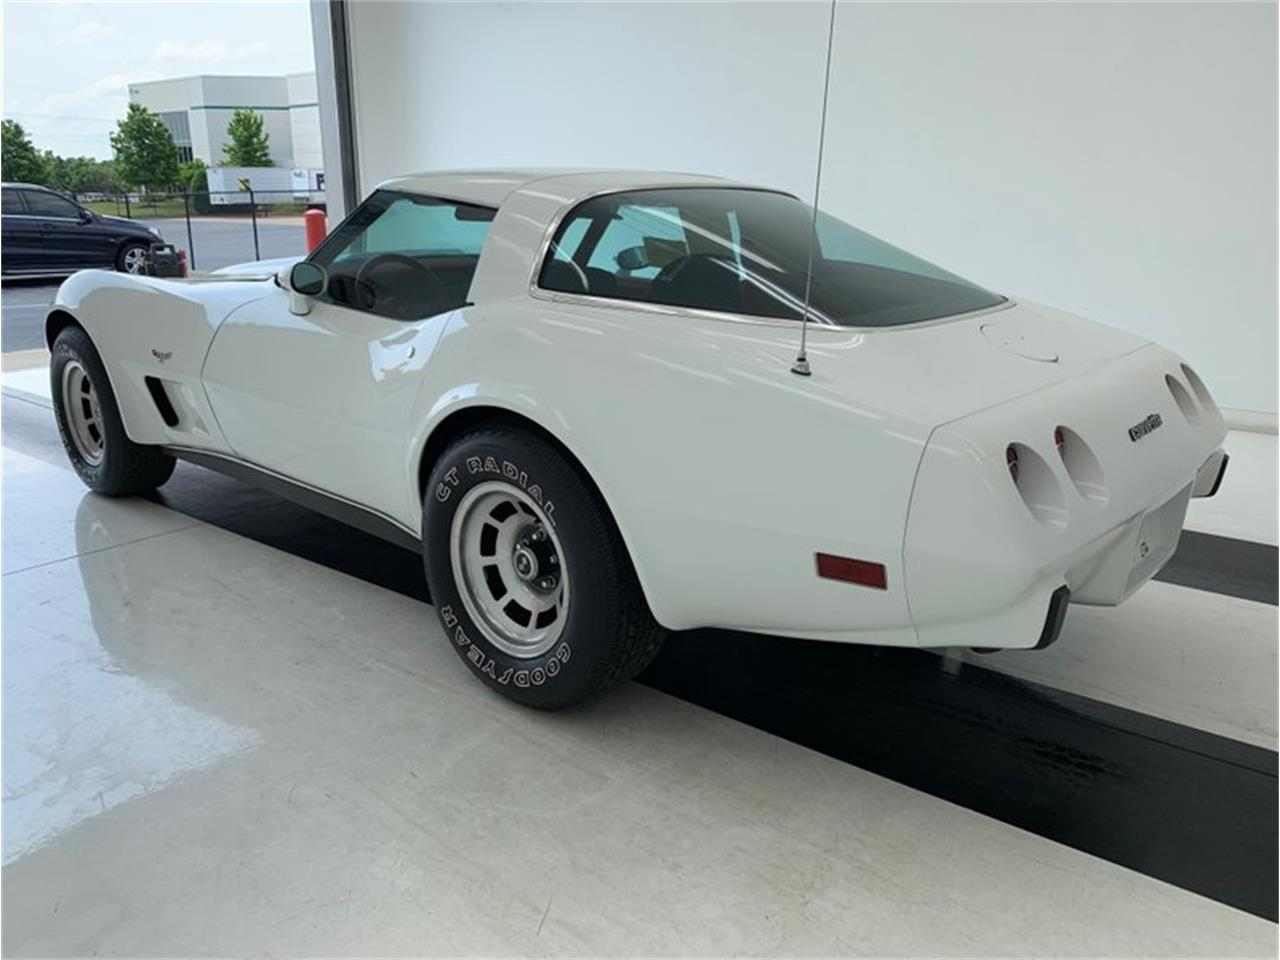 Large Picture of 1978 Corvette located in Greensboro North Carolina Auction Vehicle Offered by GAA Classic Cars Auctions - QJKW